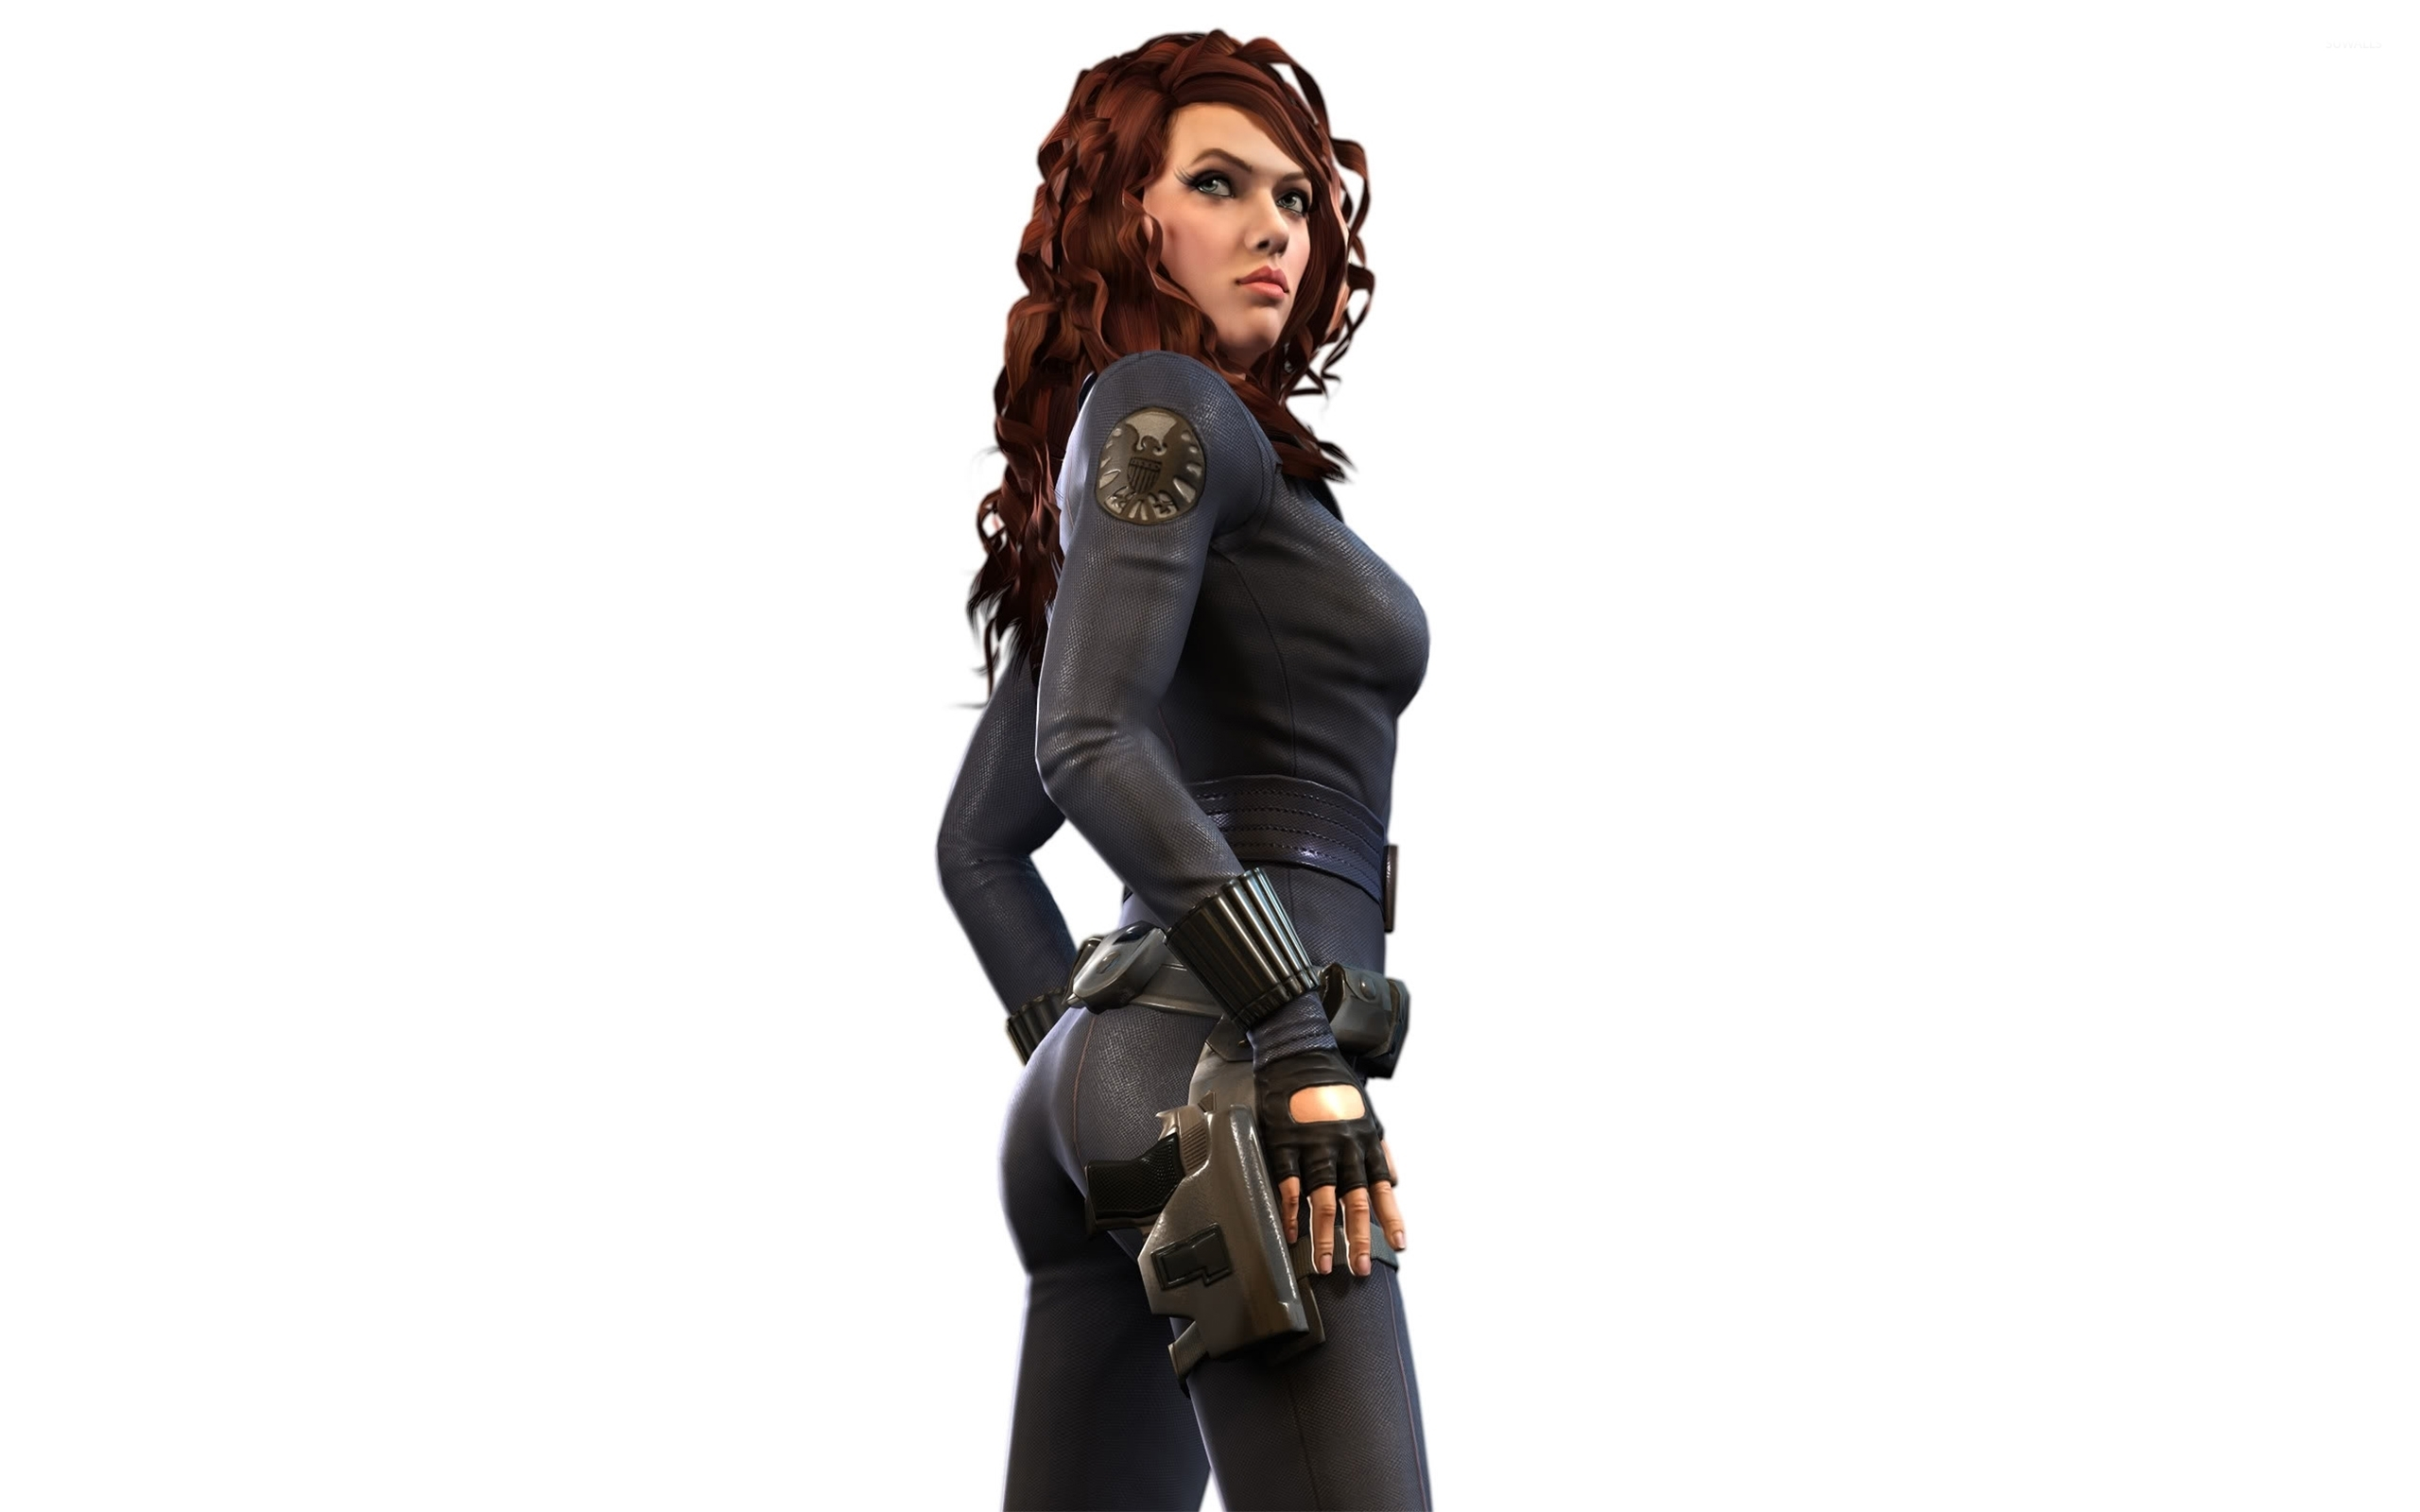 Black Widow Wallpaper Digital Art Wallpapers 42382